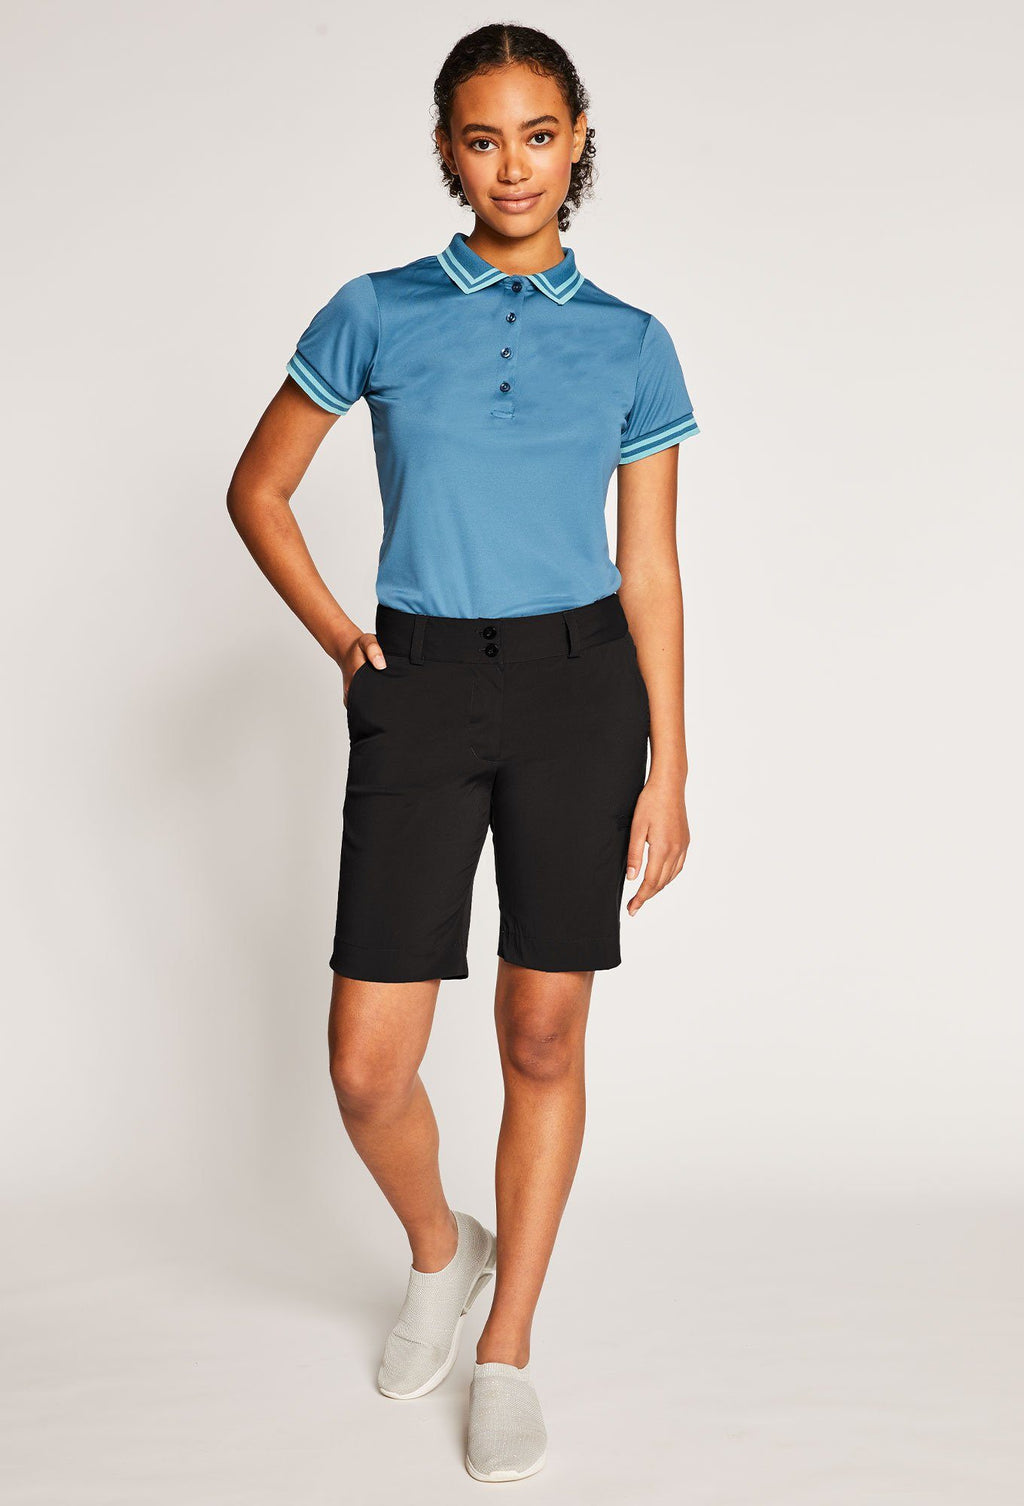 Women's Shorts - Five Pockets